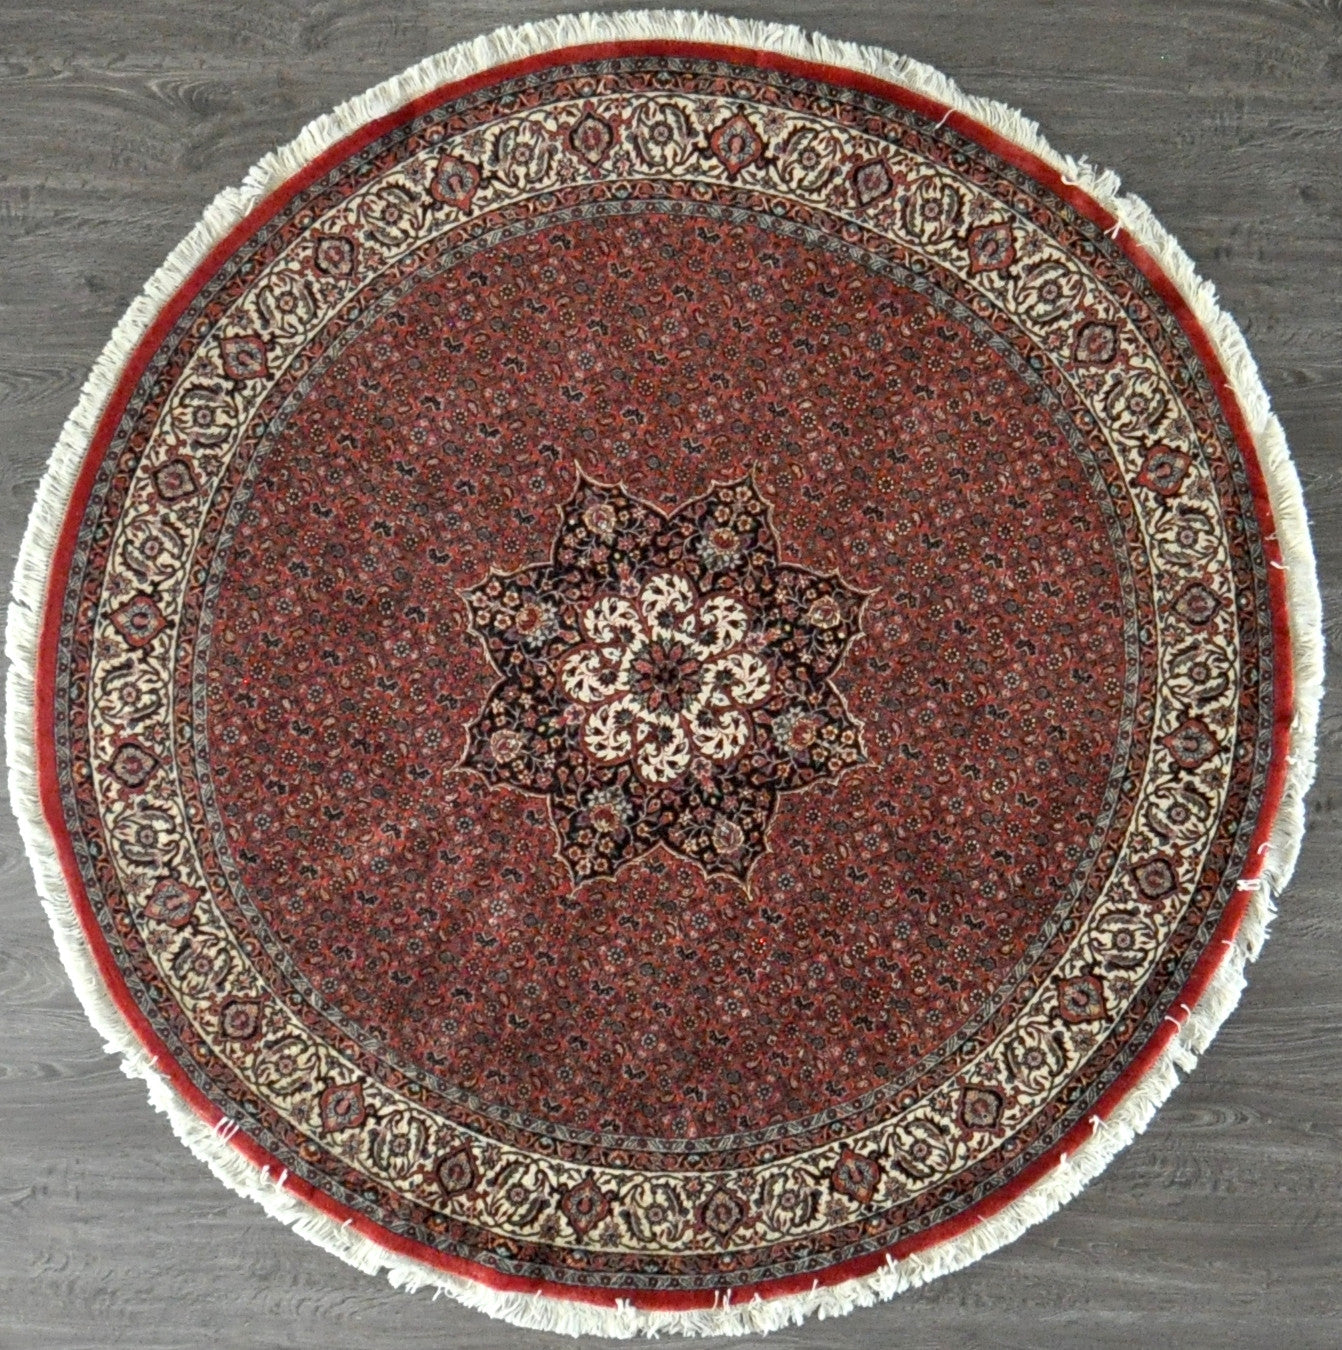 6.9x6.9 persian bijar round wool silk #46004